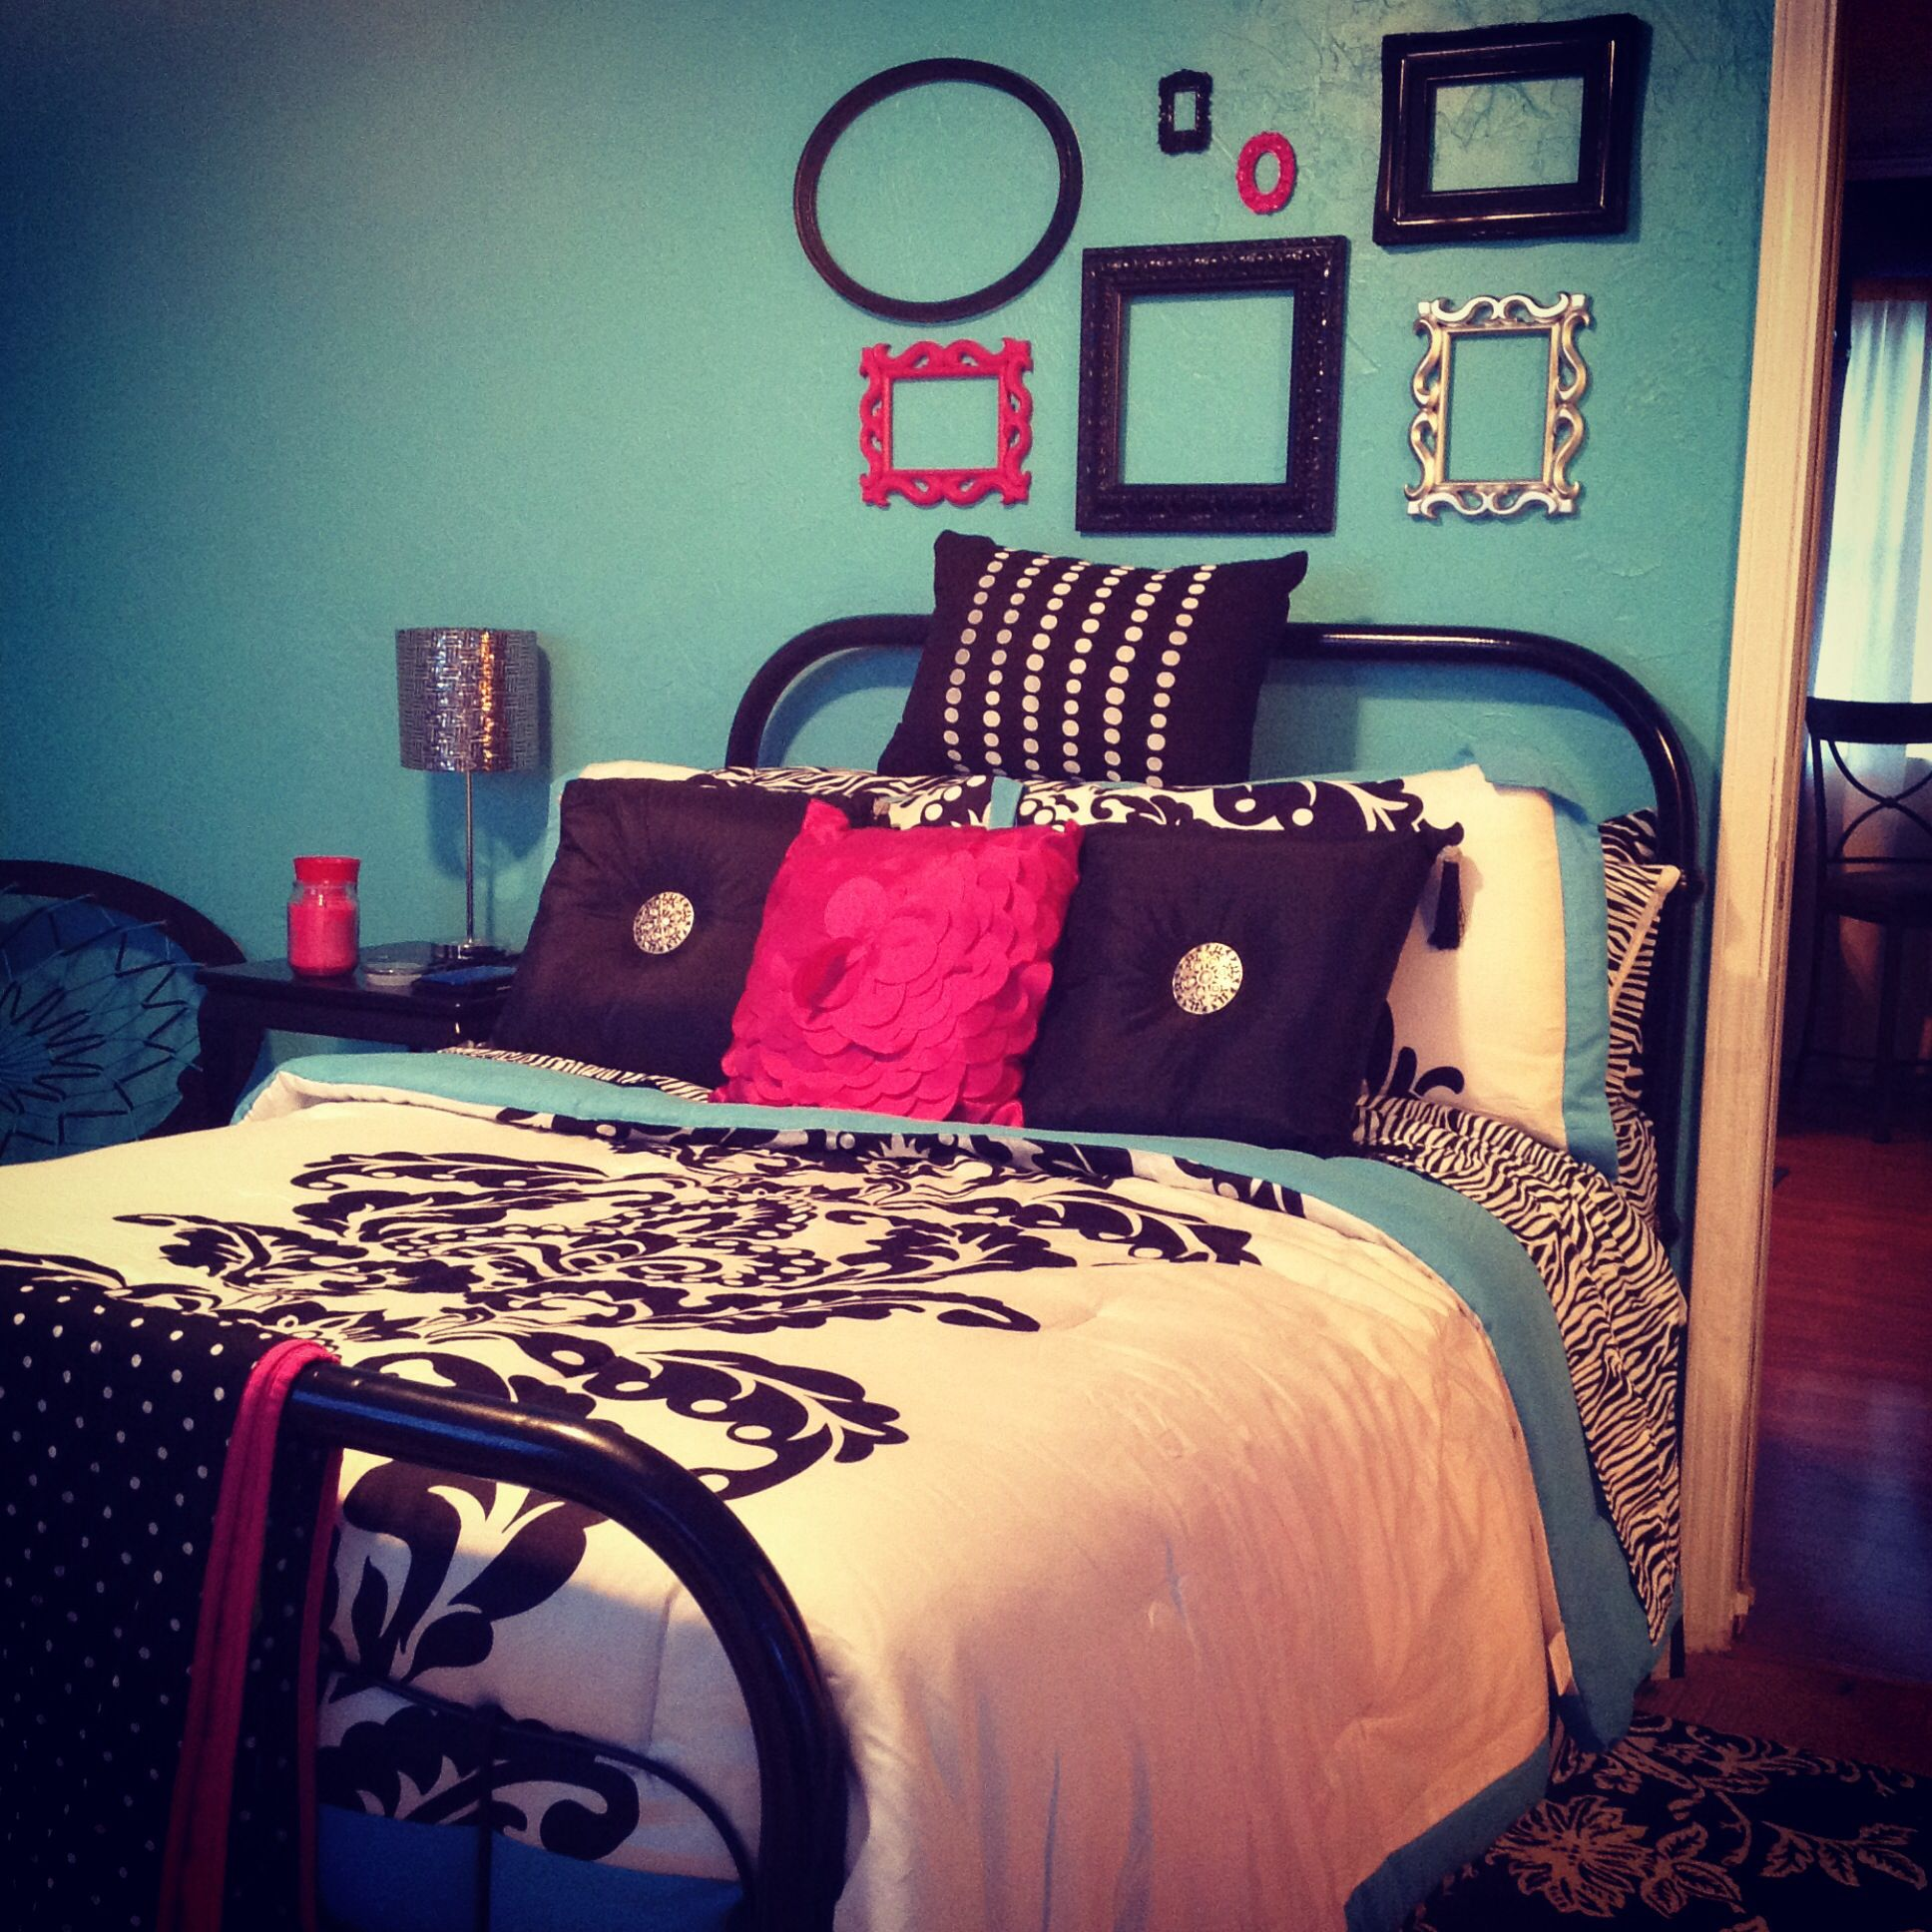 My bedroom :). Turquoise, white, and black with a berry pink accent. So chic! Bedspread from Walmart and accent pillows from Ross. Frames on the wall from Goodwill and Kirklands. The spring chair in the back from Target! Lamp is from Gordman's